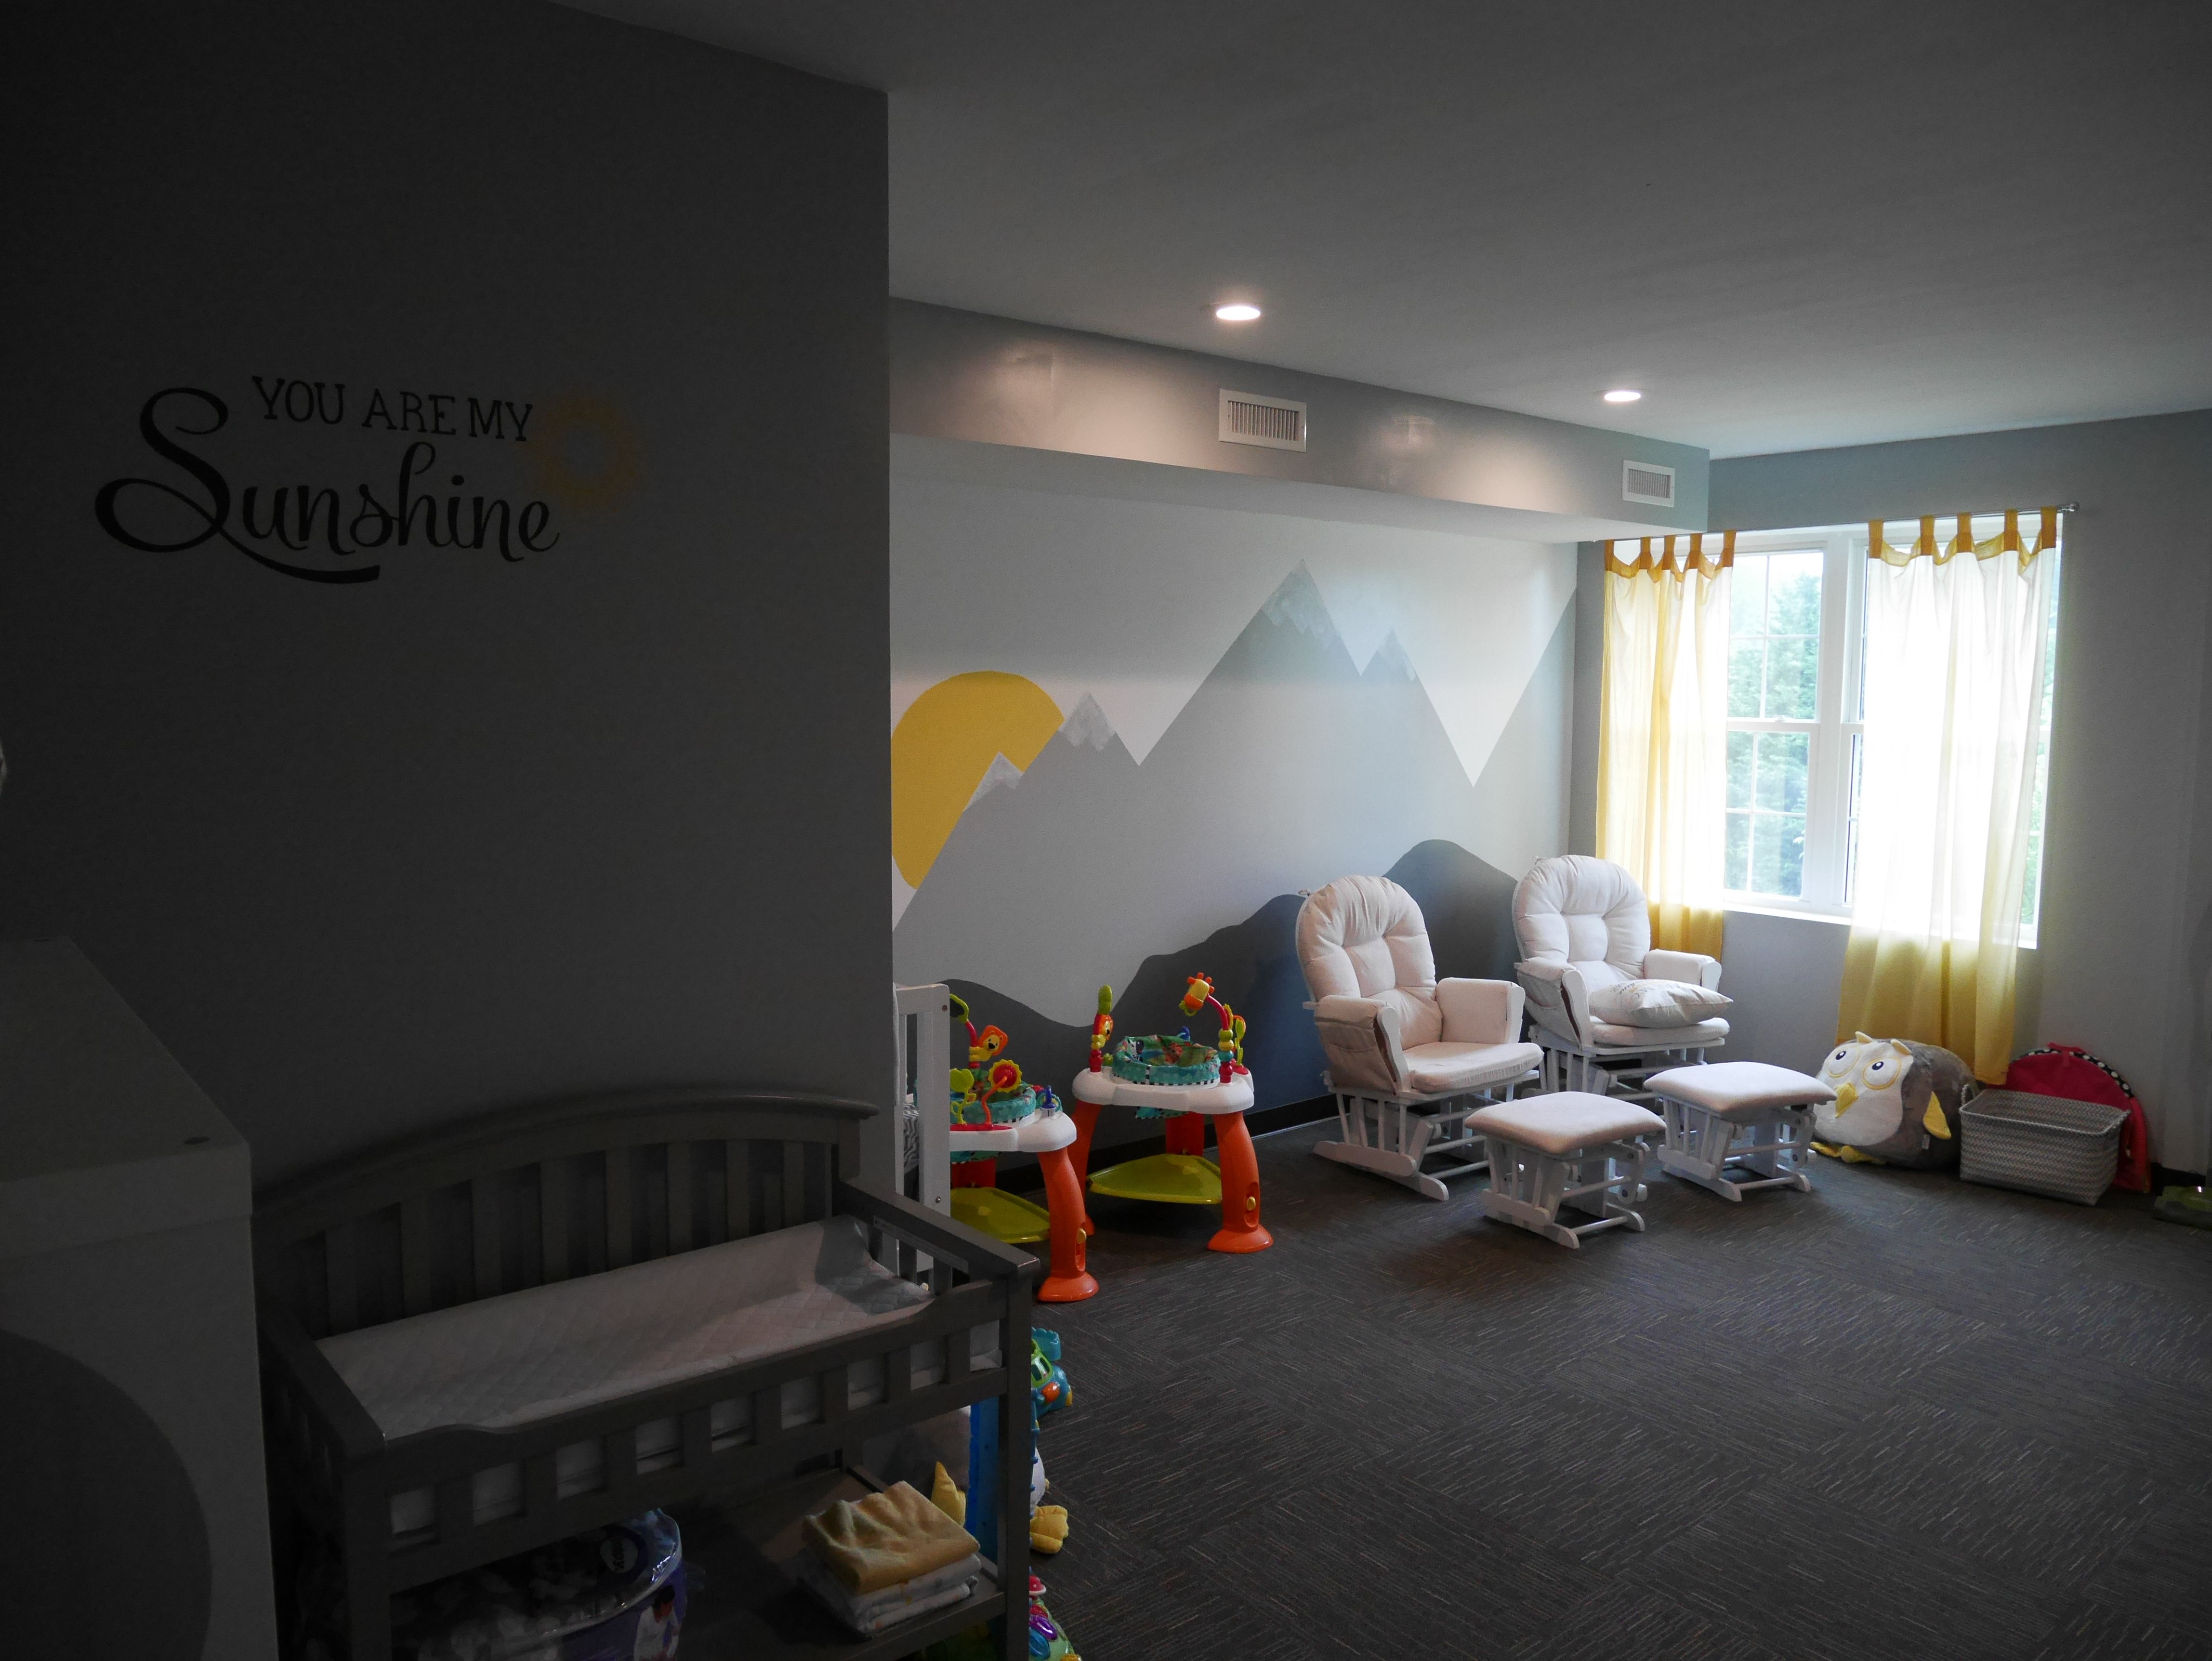 Church Nursery Quarter Turned Carpet Tile Mountain Themed Accent